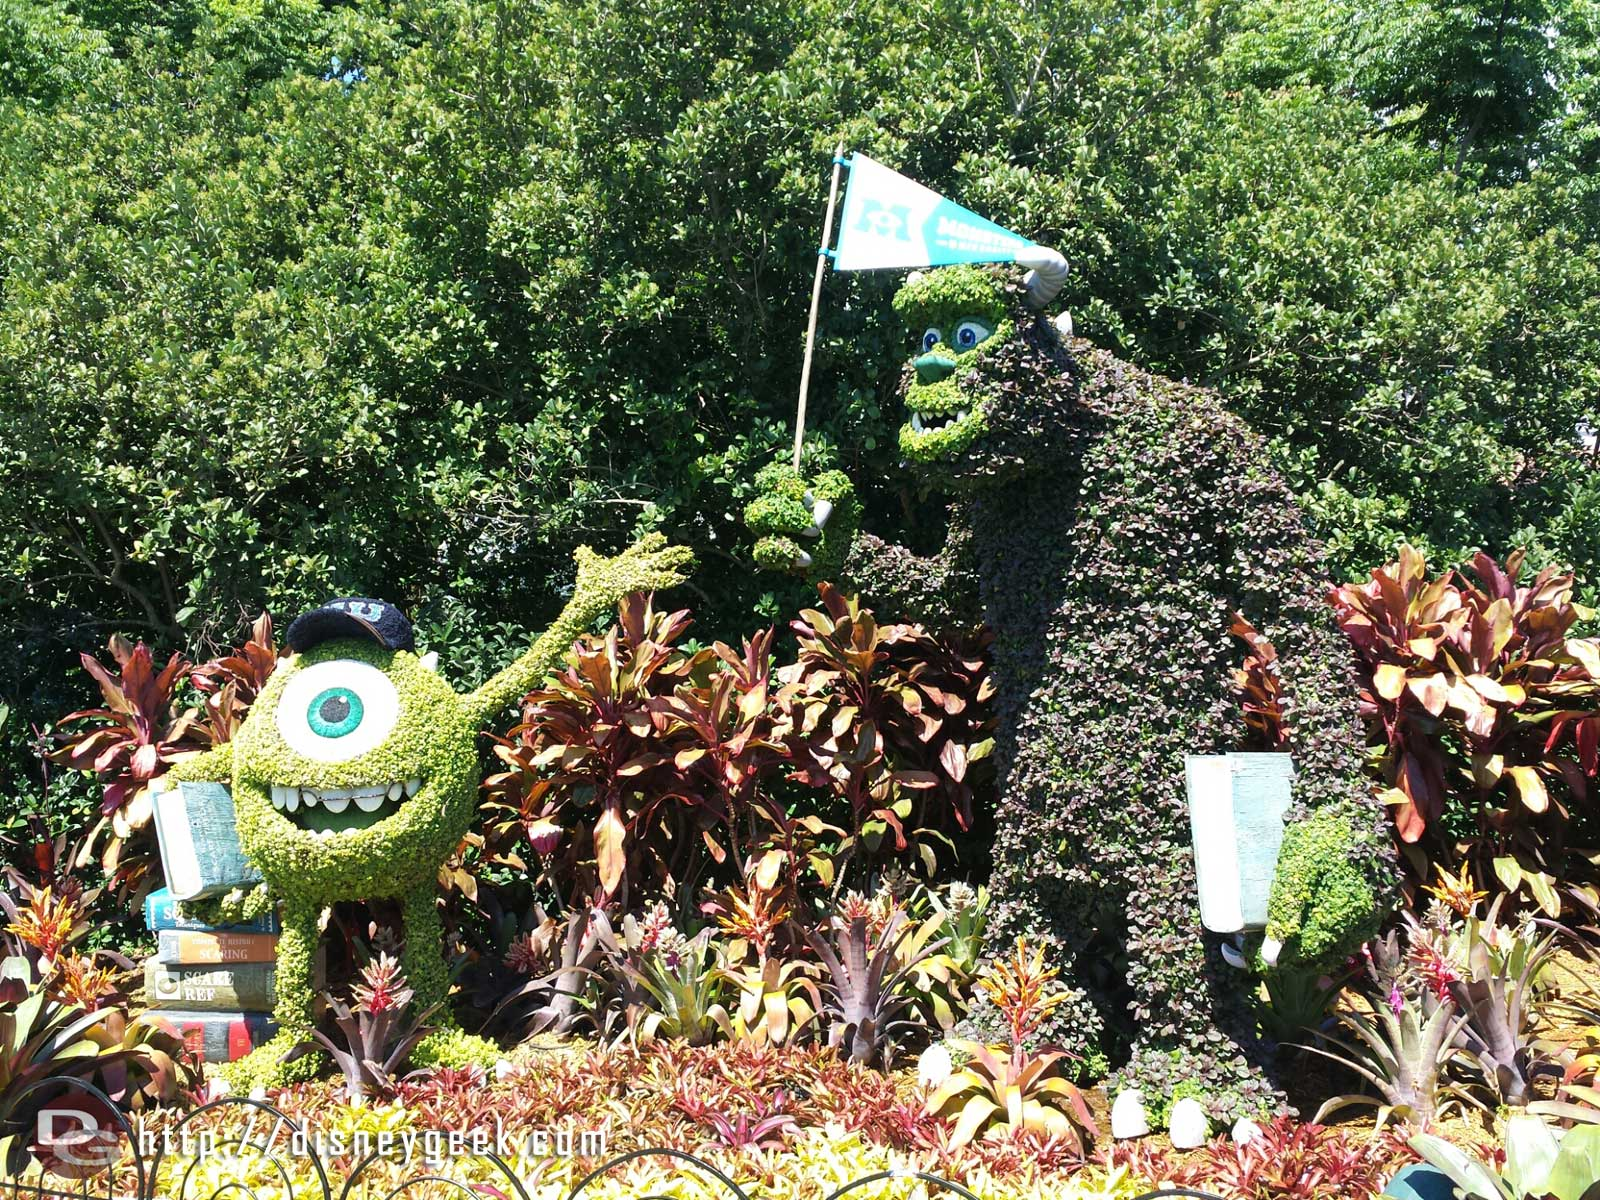 Mike & Sulley from Monsters University Topiaries    –  Epcot International Flower & Garden Festival